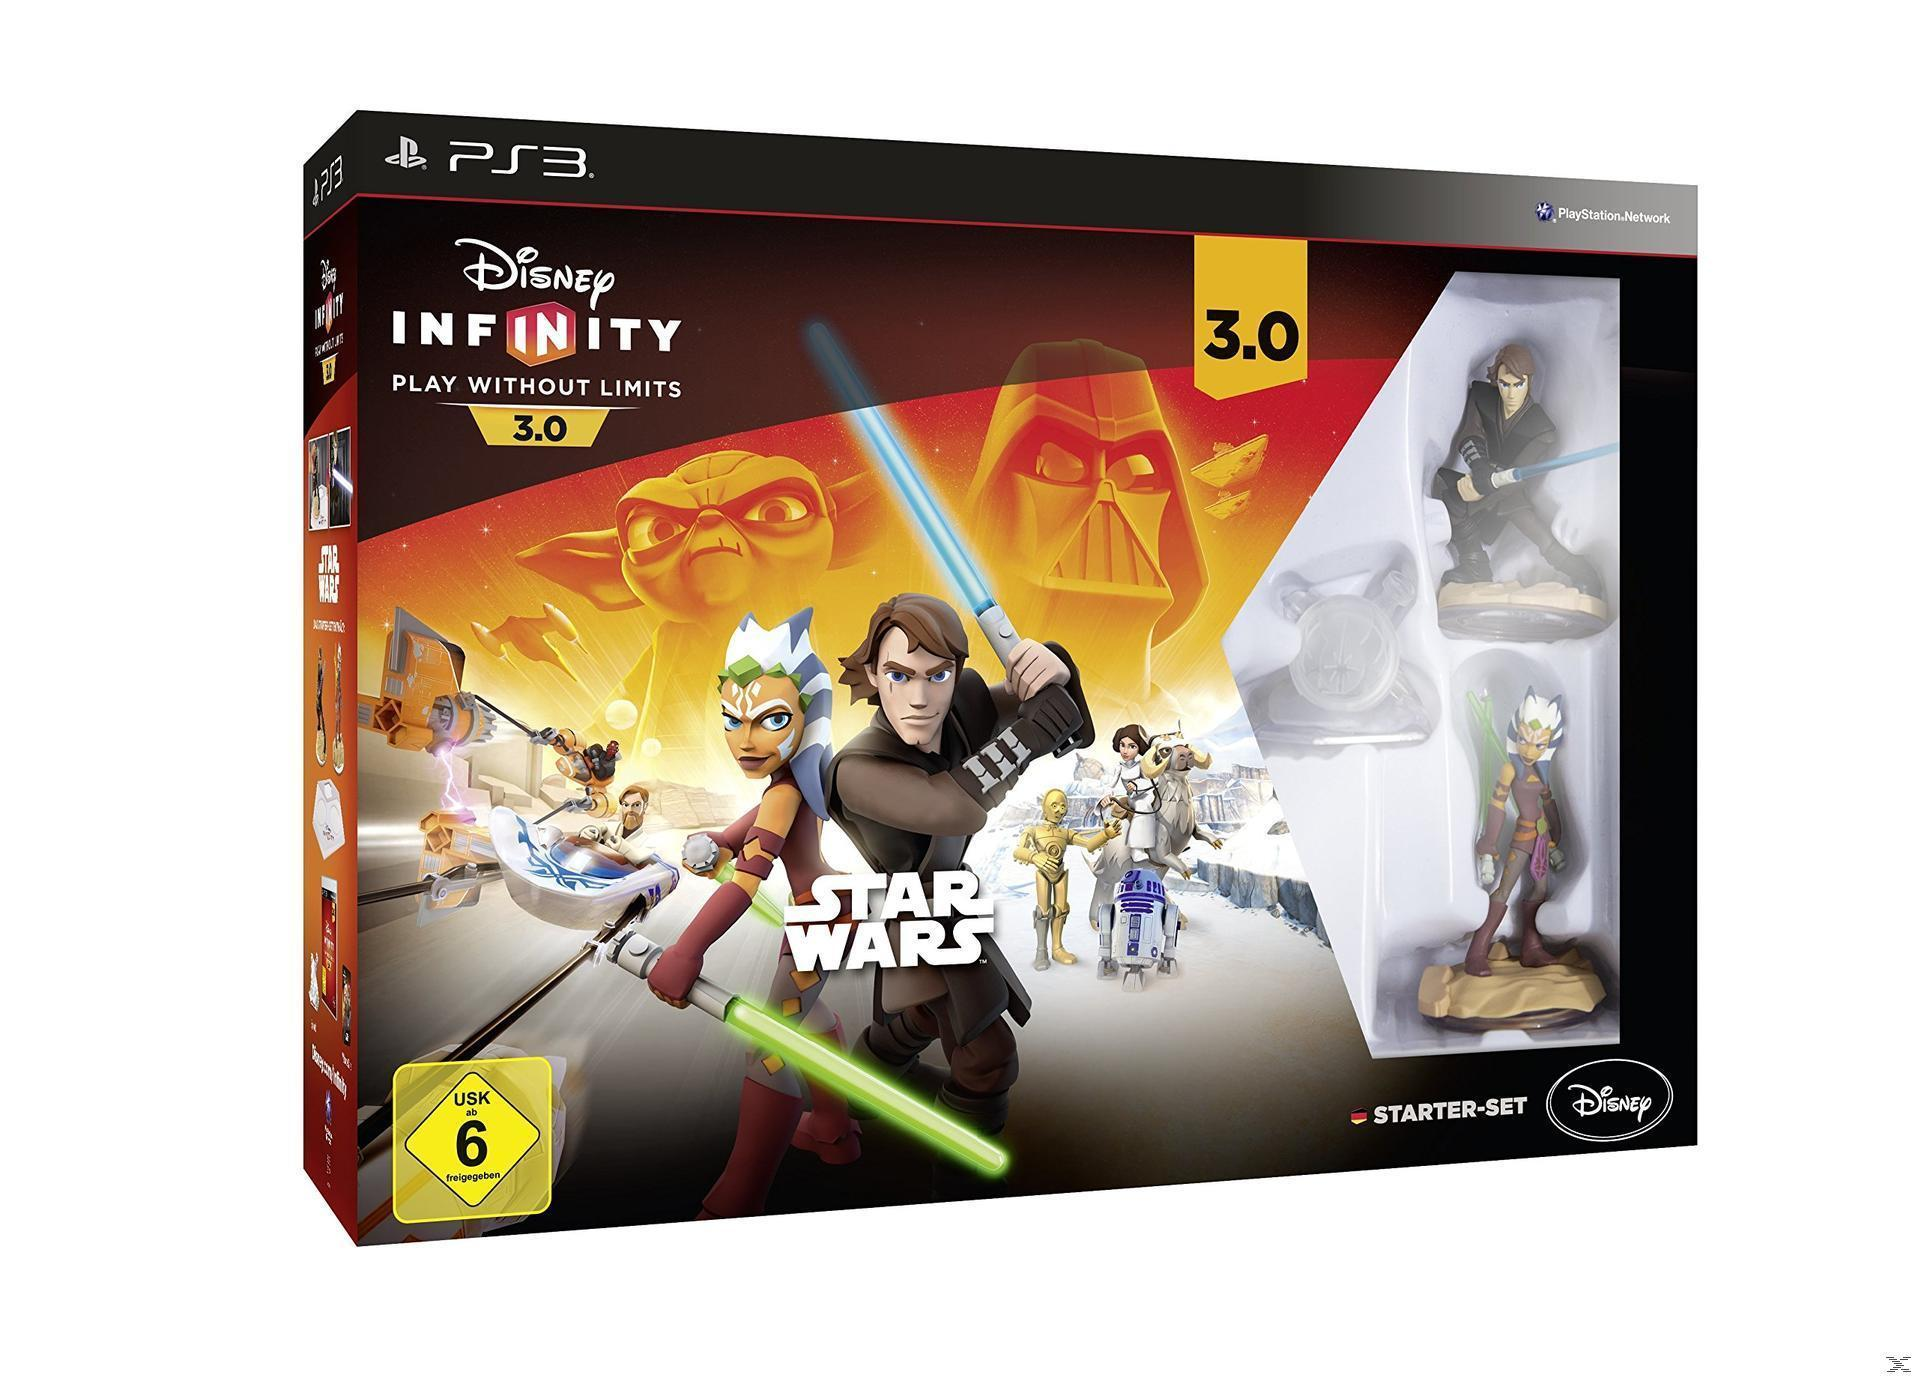 Disney Infinity 3.0: Play Without Limits Star Wars Starter-Set (Playstation3) für 22,99 Euro